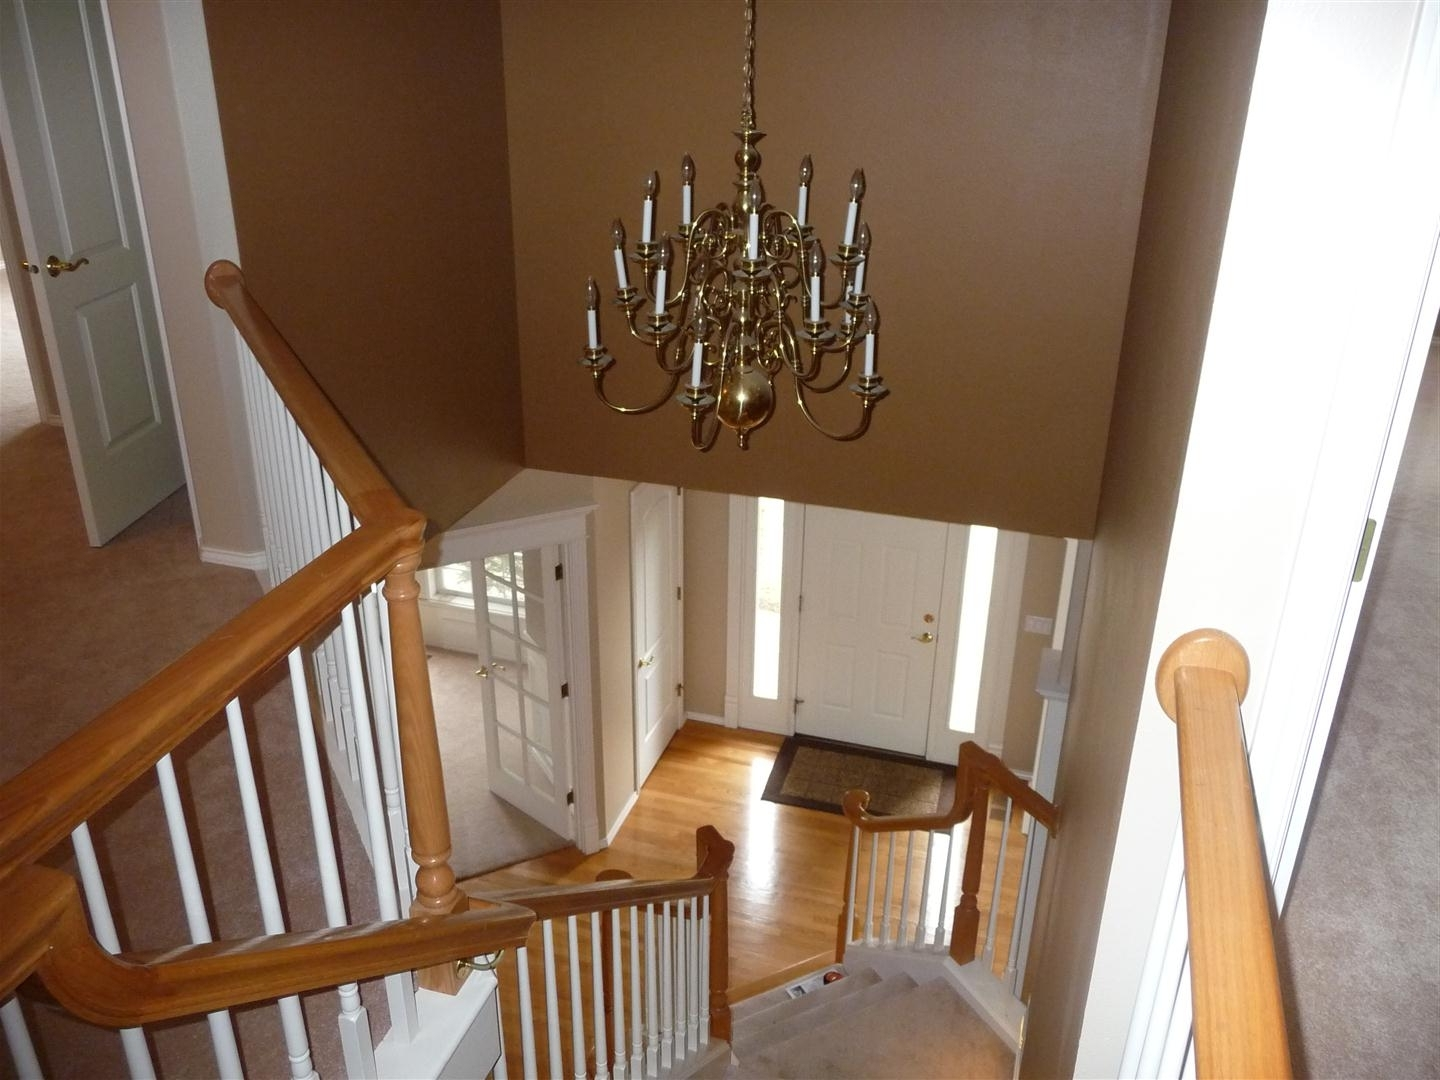 Replacing Chandelier – Entry Is 2 Stories Tall (phone, Painting Within Recent Stairway Chandeliers (View 15 of 20)